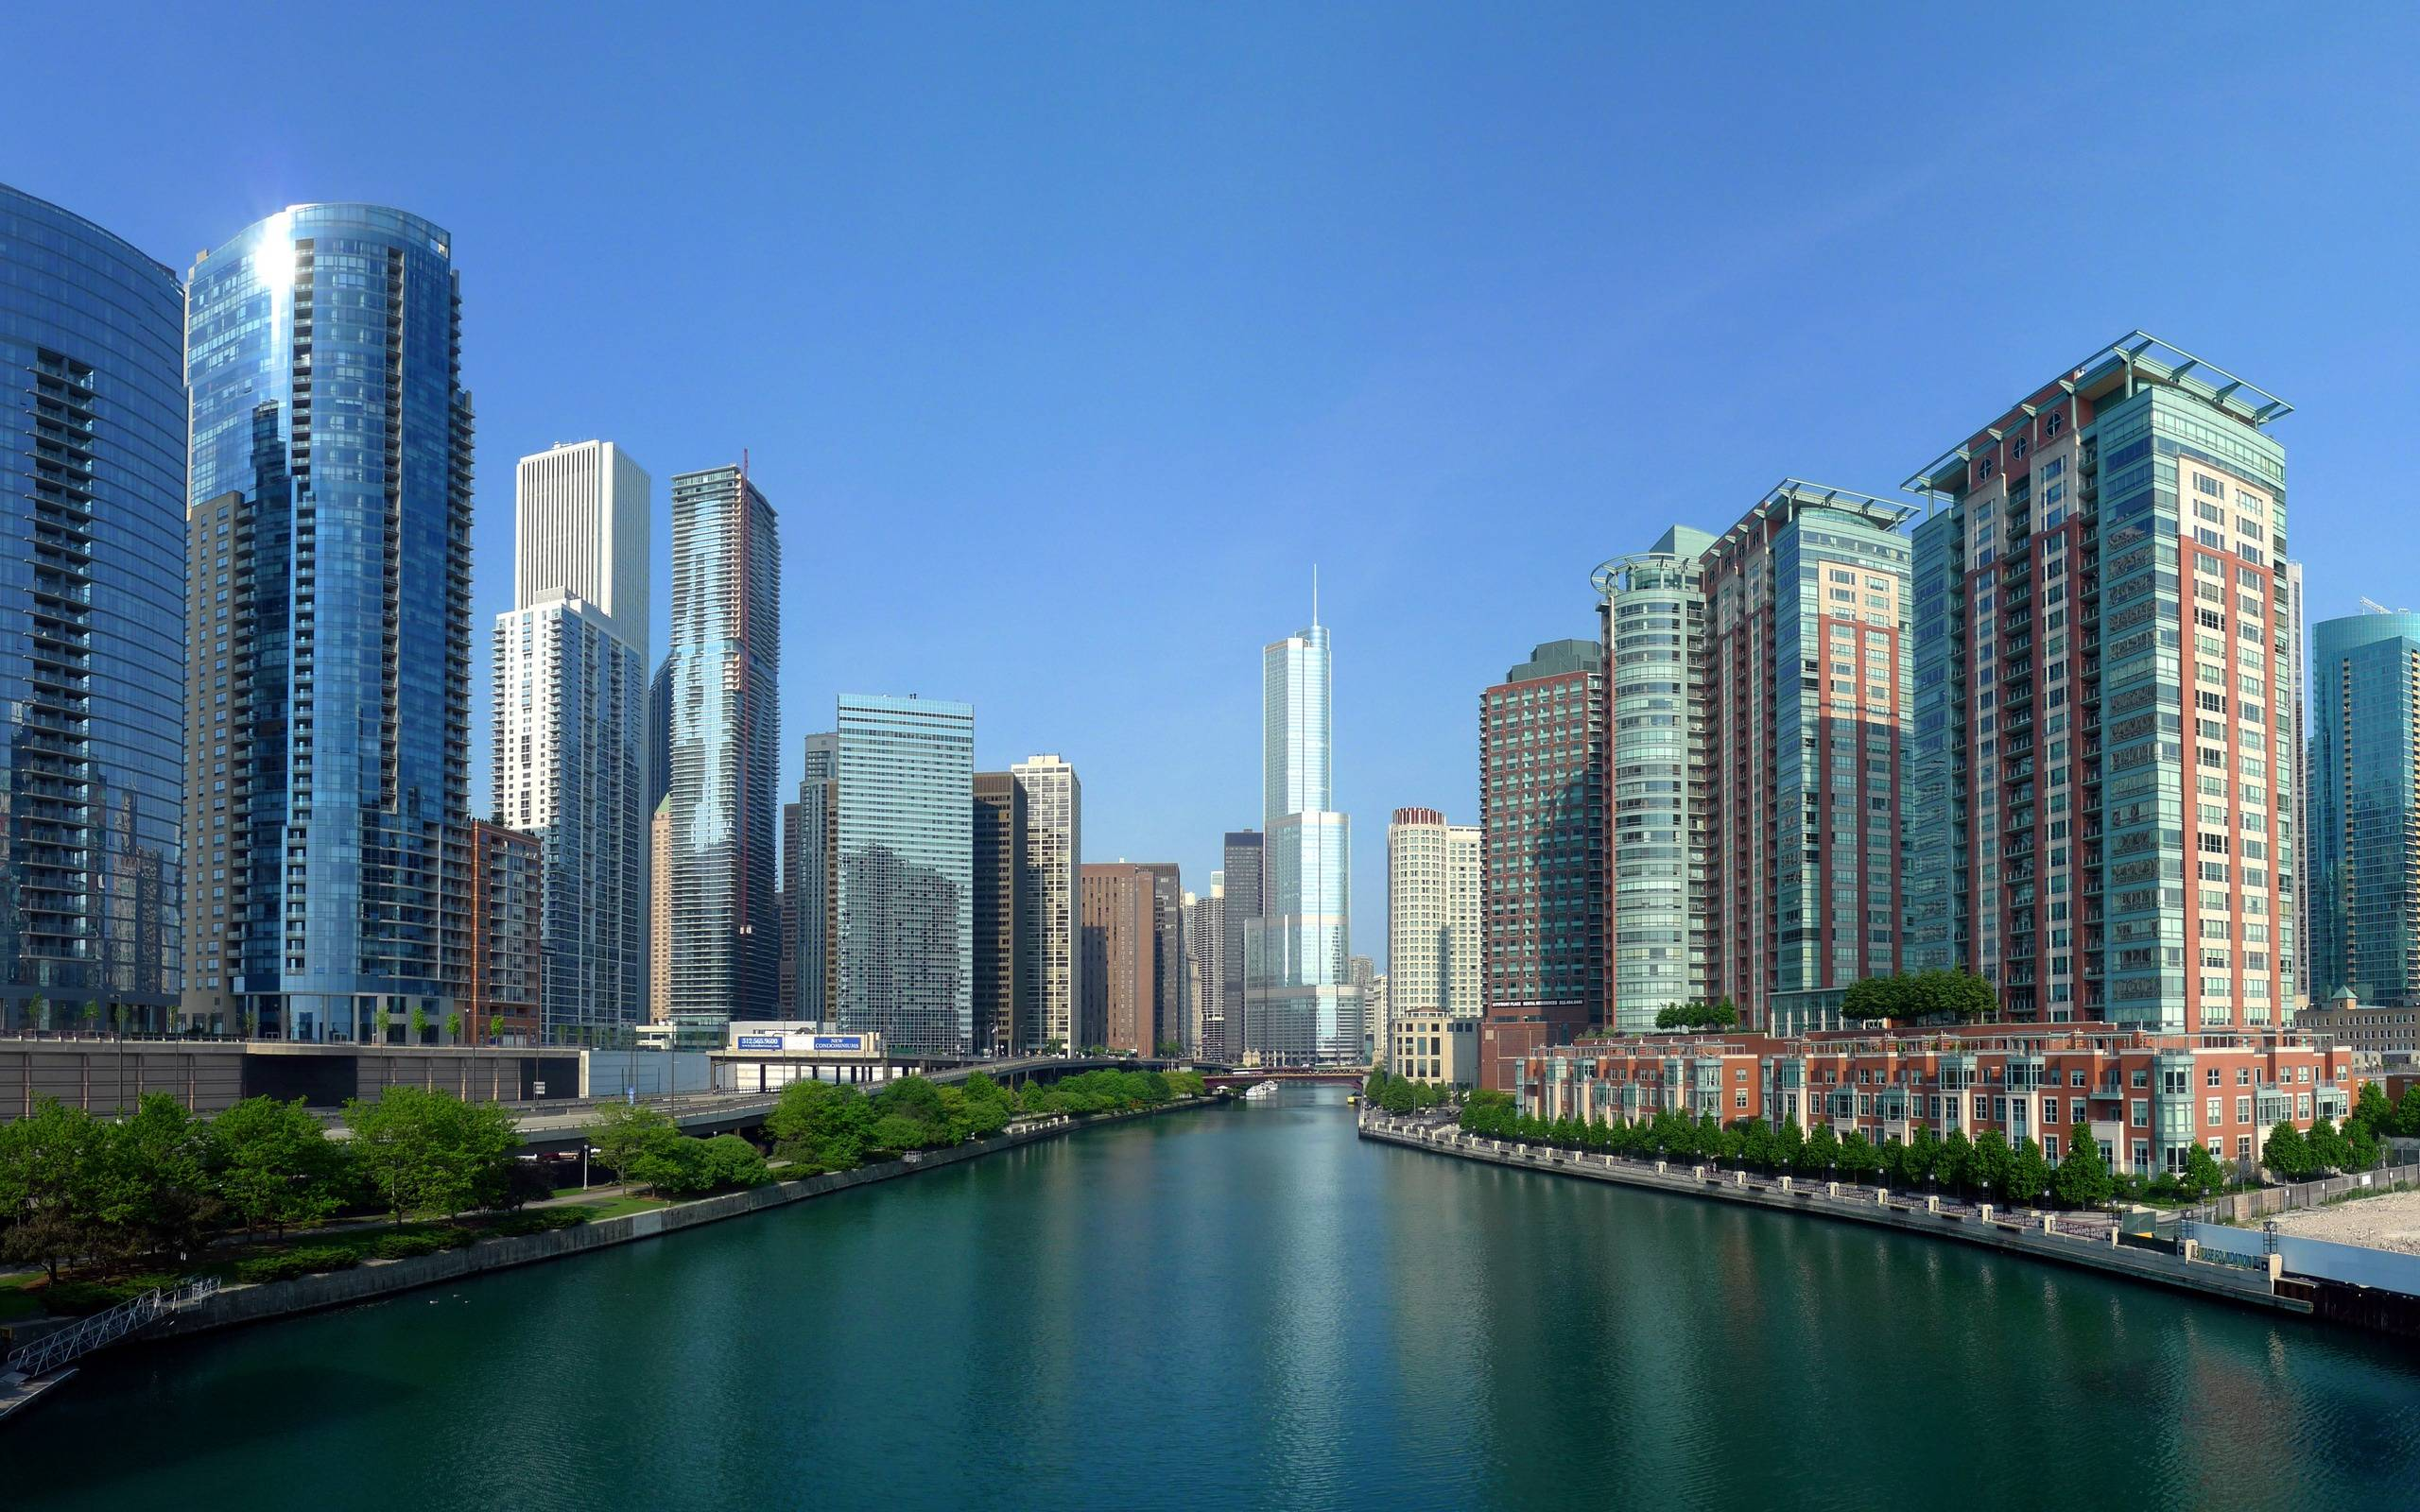 Chicago wallpaper | Cities wallpapers